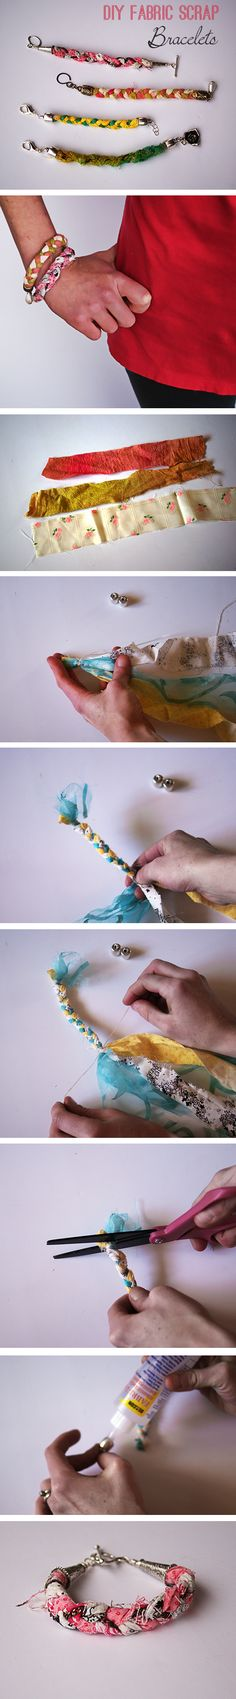 Easy Scrap Fabric Bracelet DIY from @savedbyloves #DIY #Jewelry #Upcycle